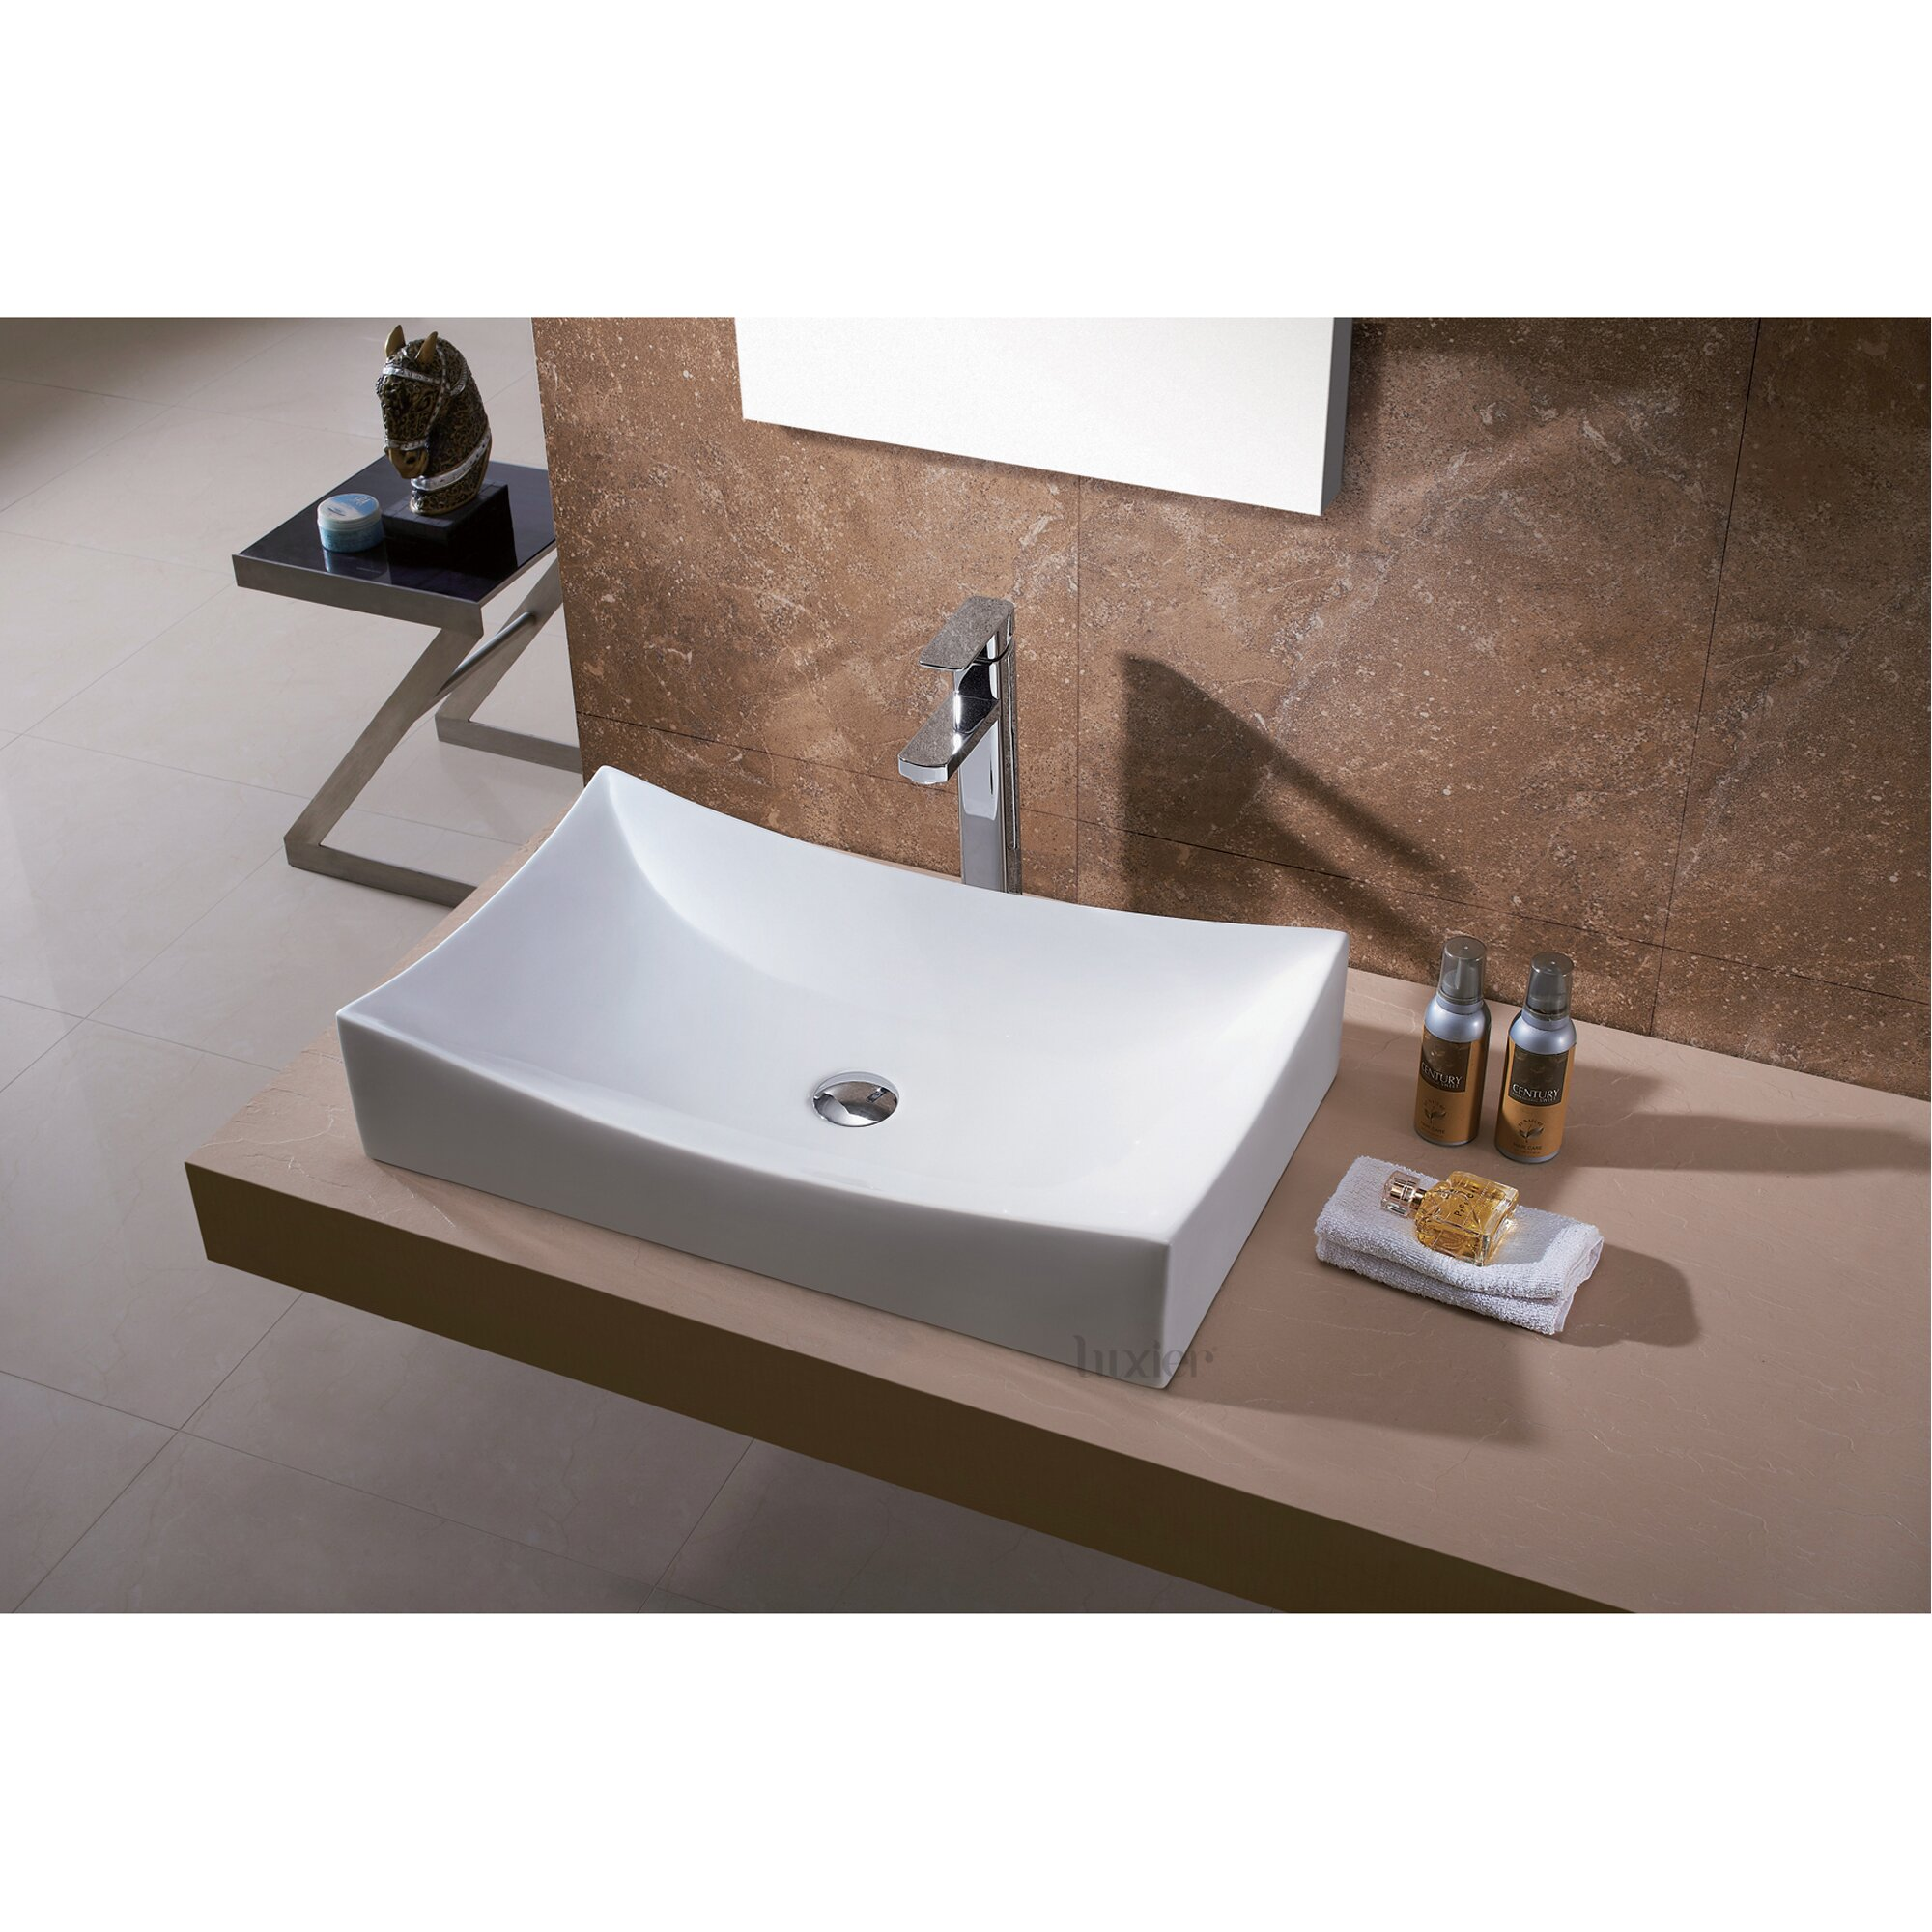 Porcelain Vessel Sinks Bathroom : Luxier L-001 Bathroom Porcelain Ceramic Vessel Vanity Sink Art Basin ...